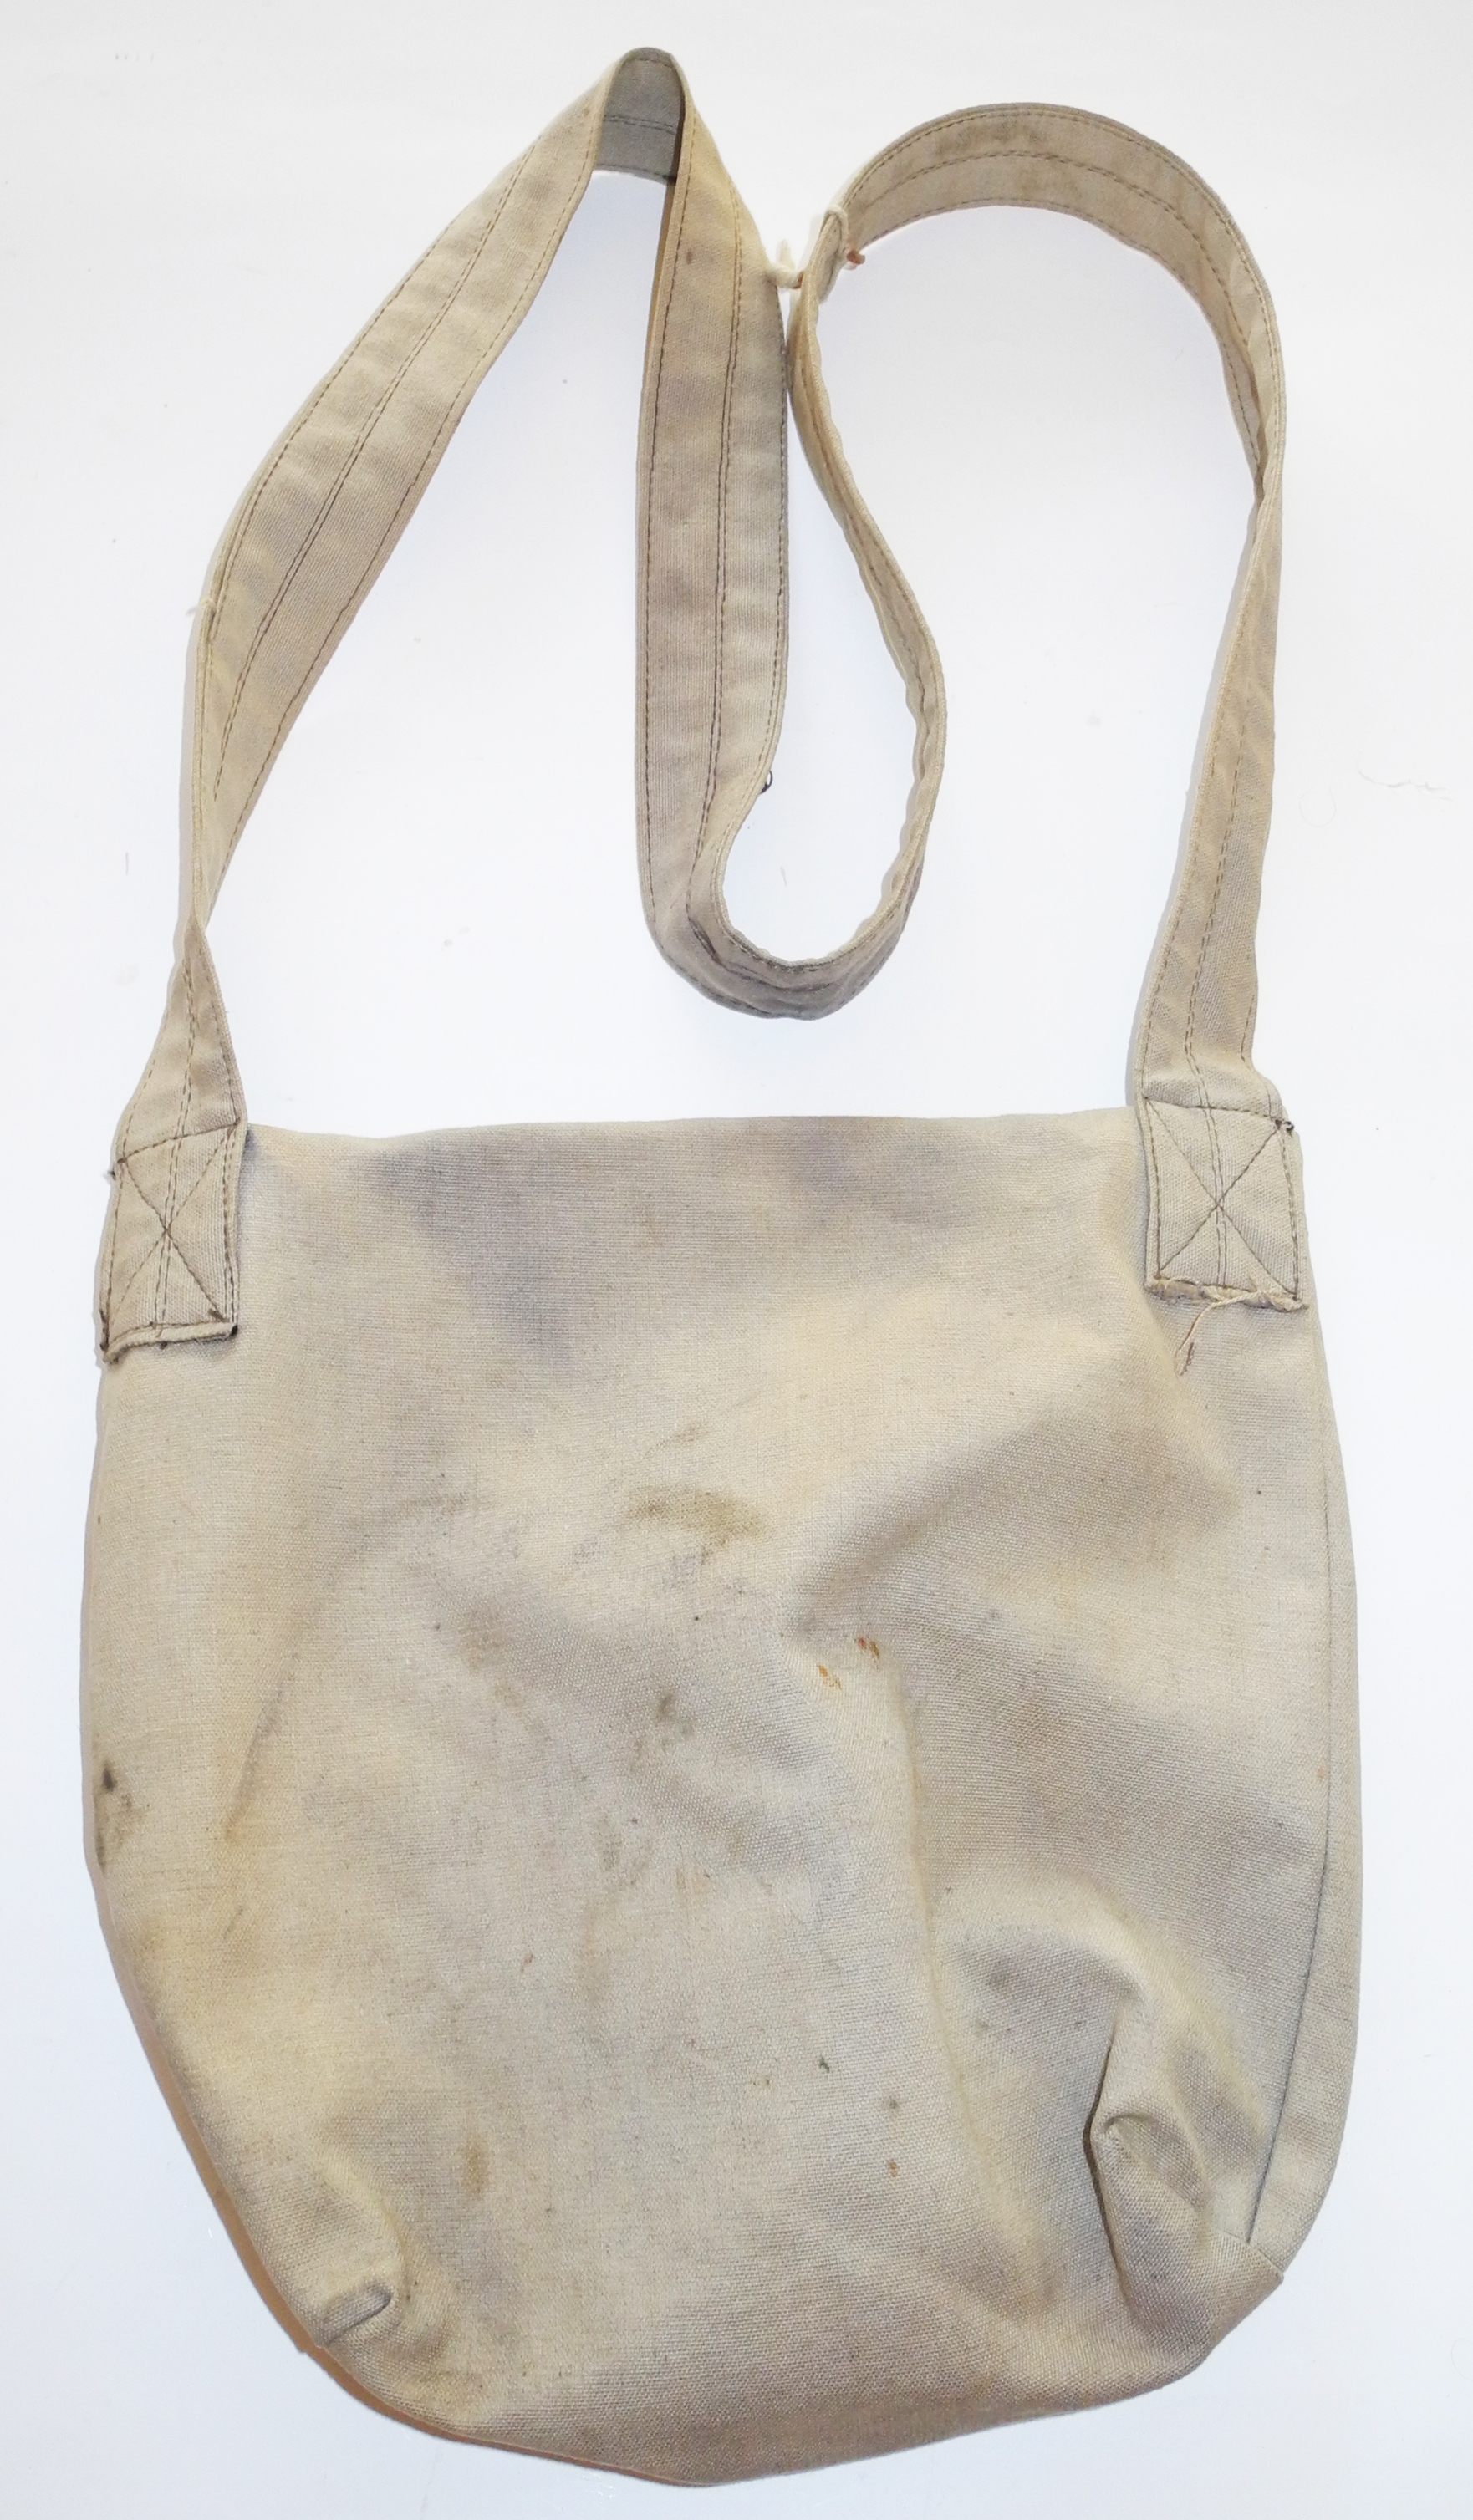 RCAF GPR Oxygen Mask stowage bag791